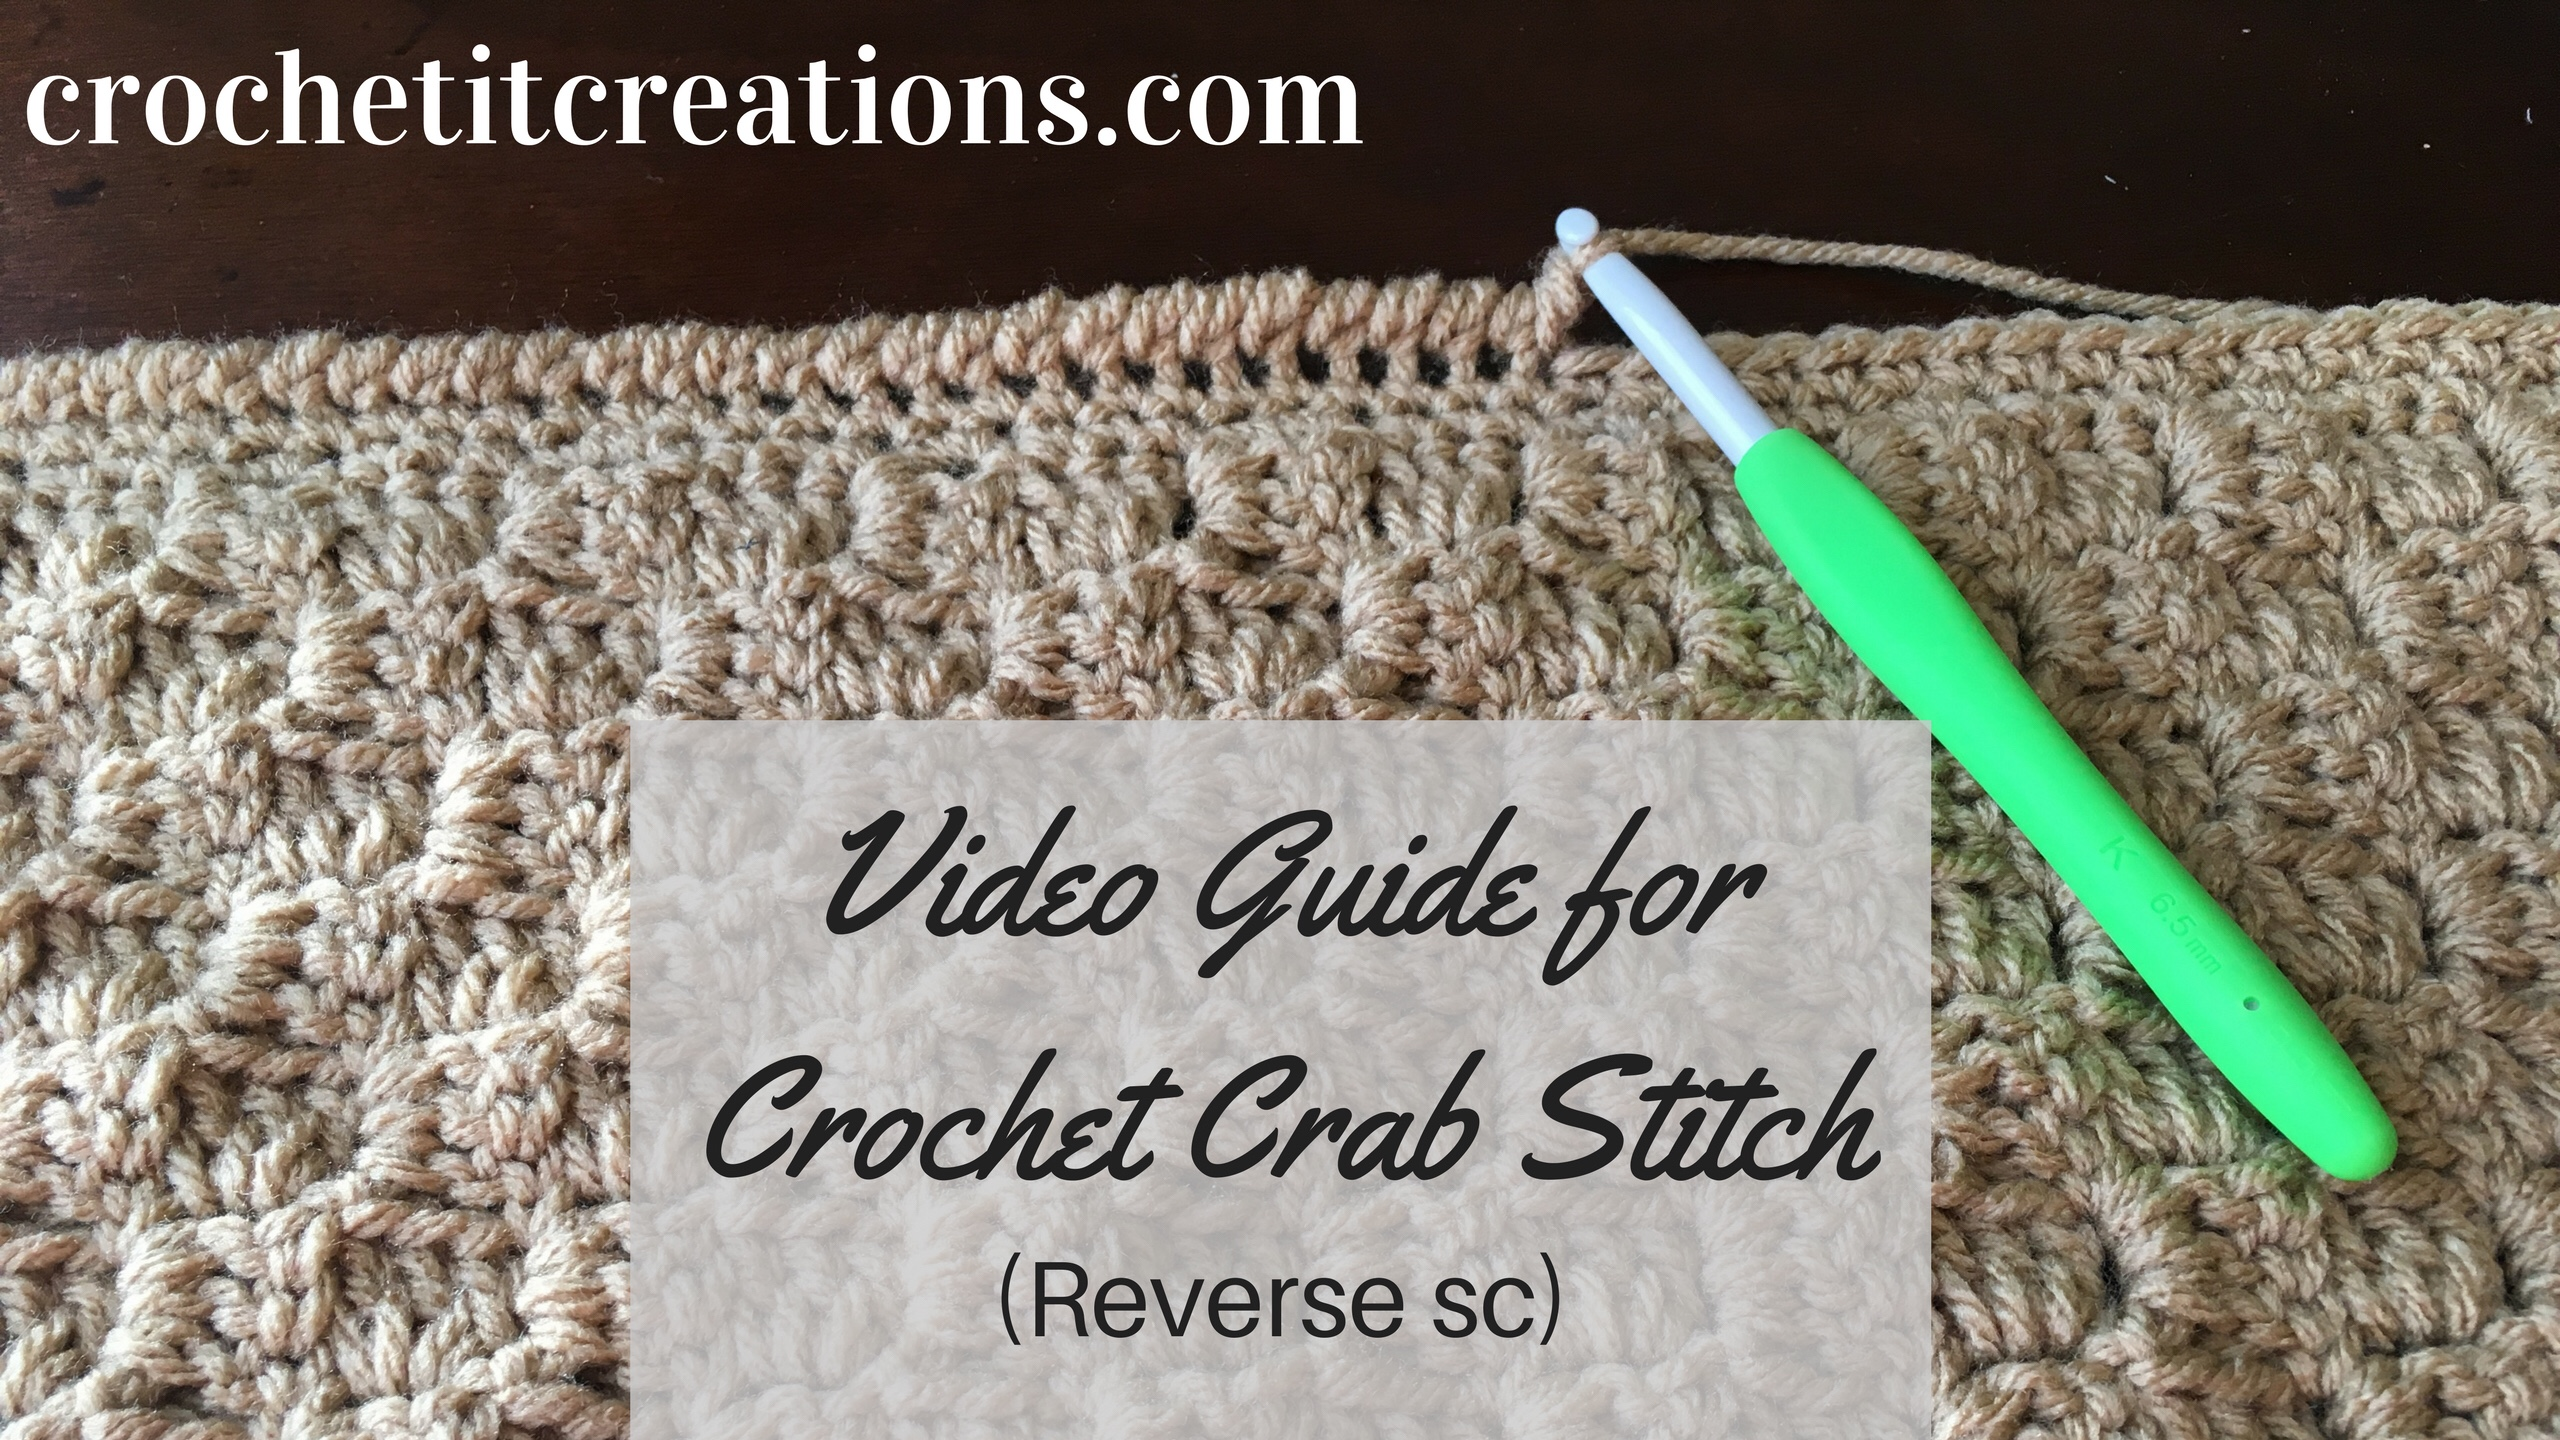 Video Guide For Crochet Crab Stitch Border Crochet It Creations